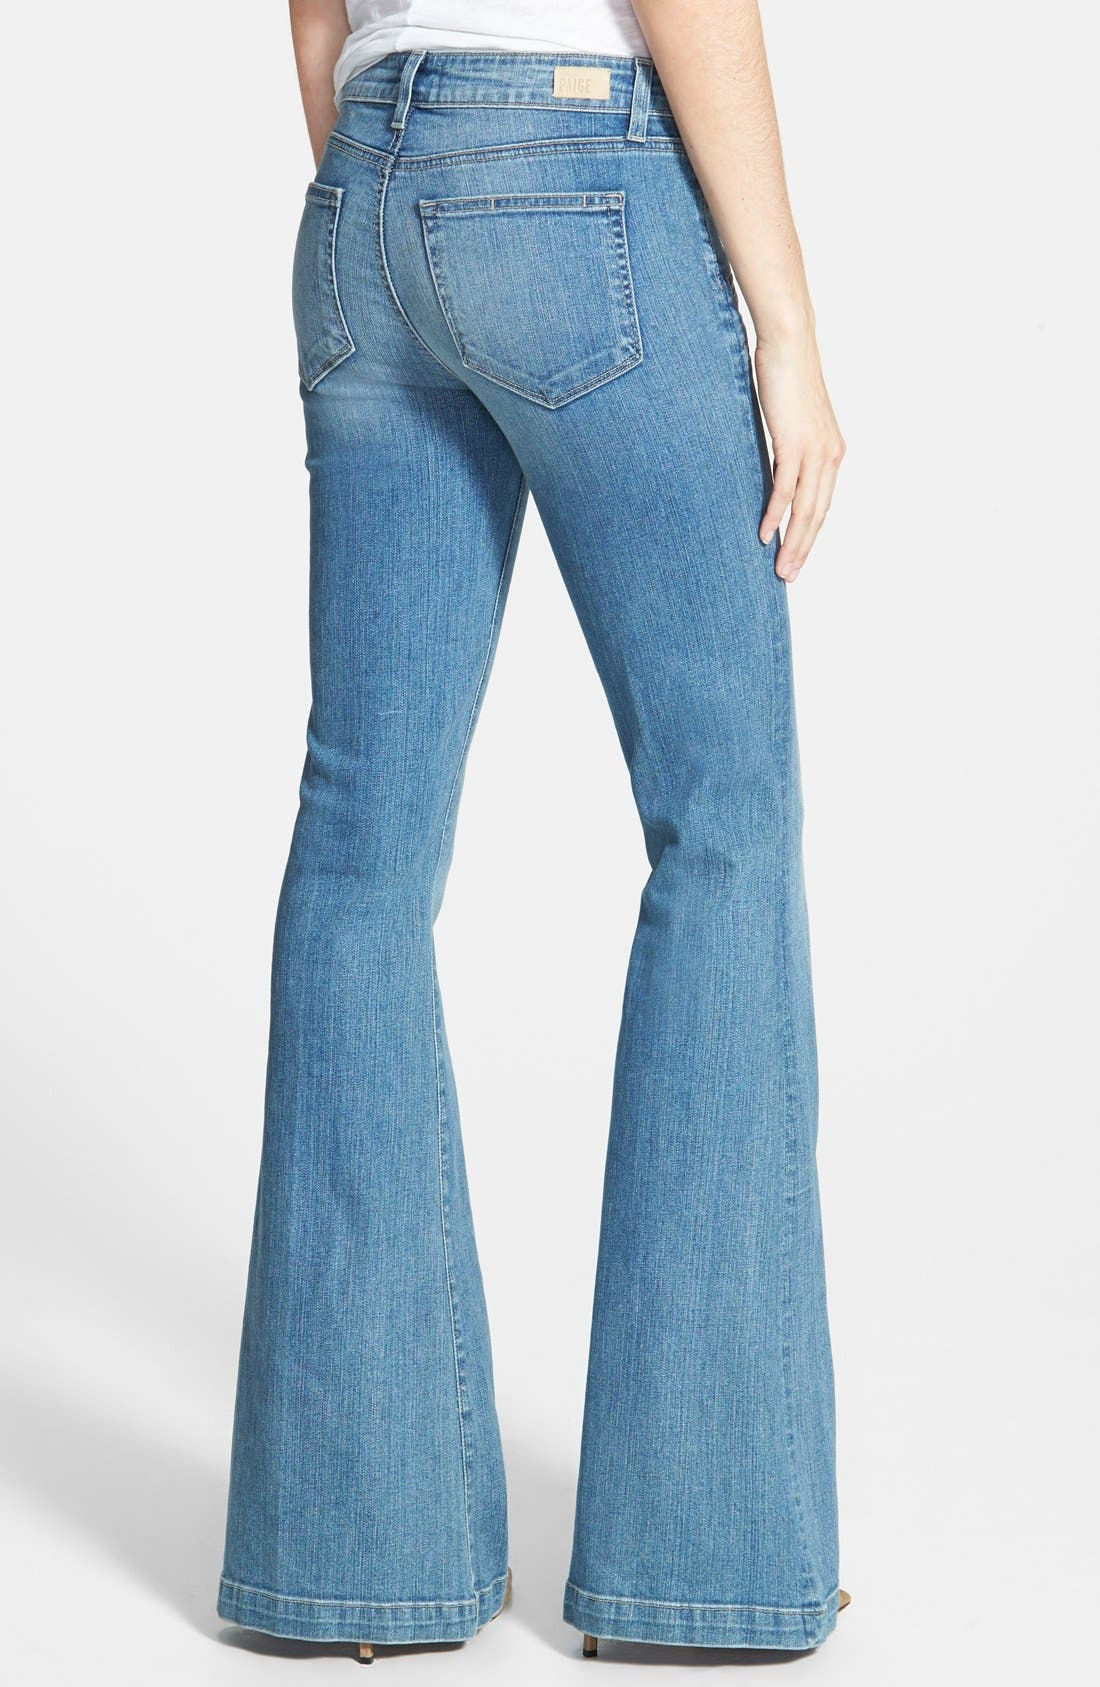 Alternate Image 2  - Paige Denim 'Fionna' Flare Jeans (Paulina No Whiskers)